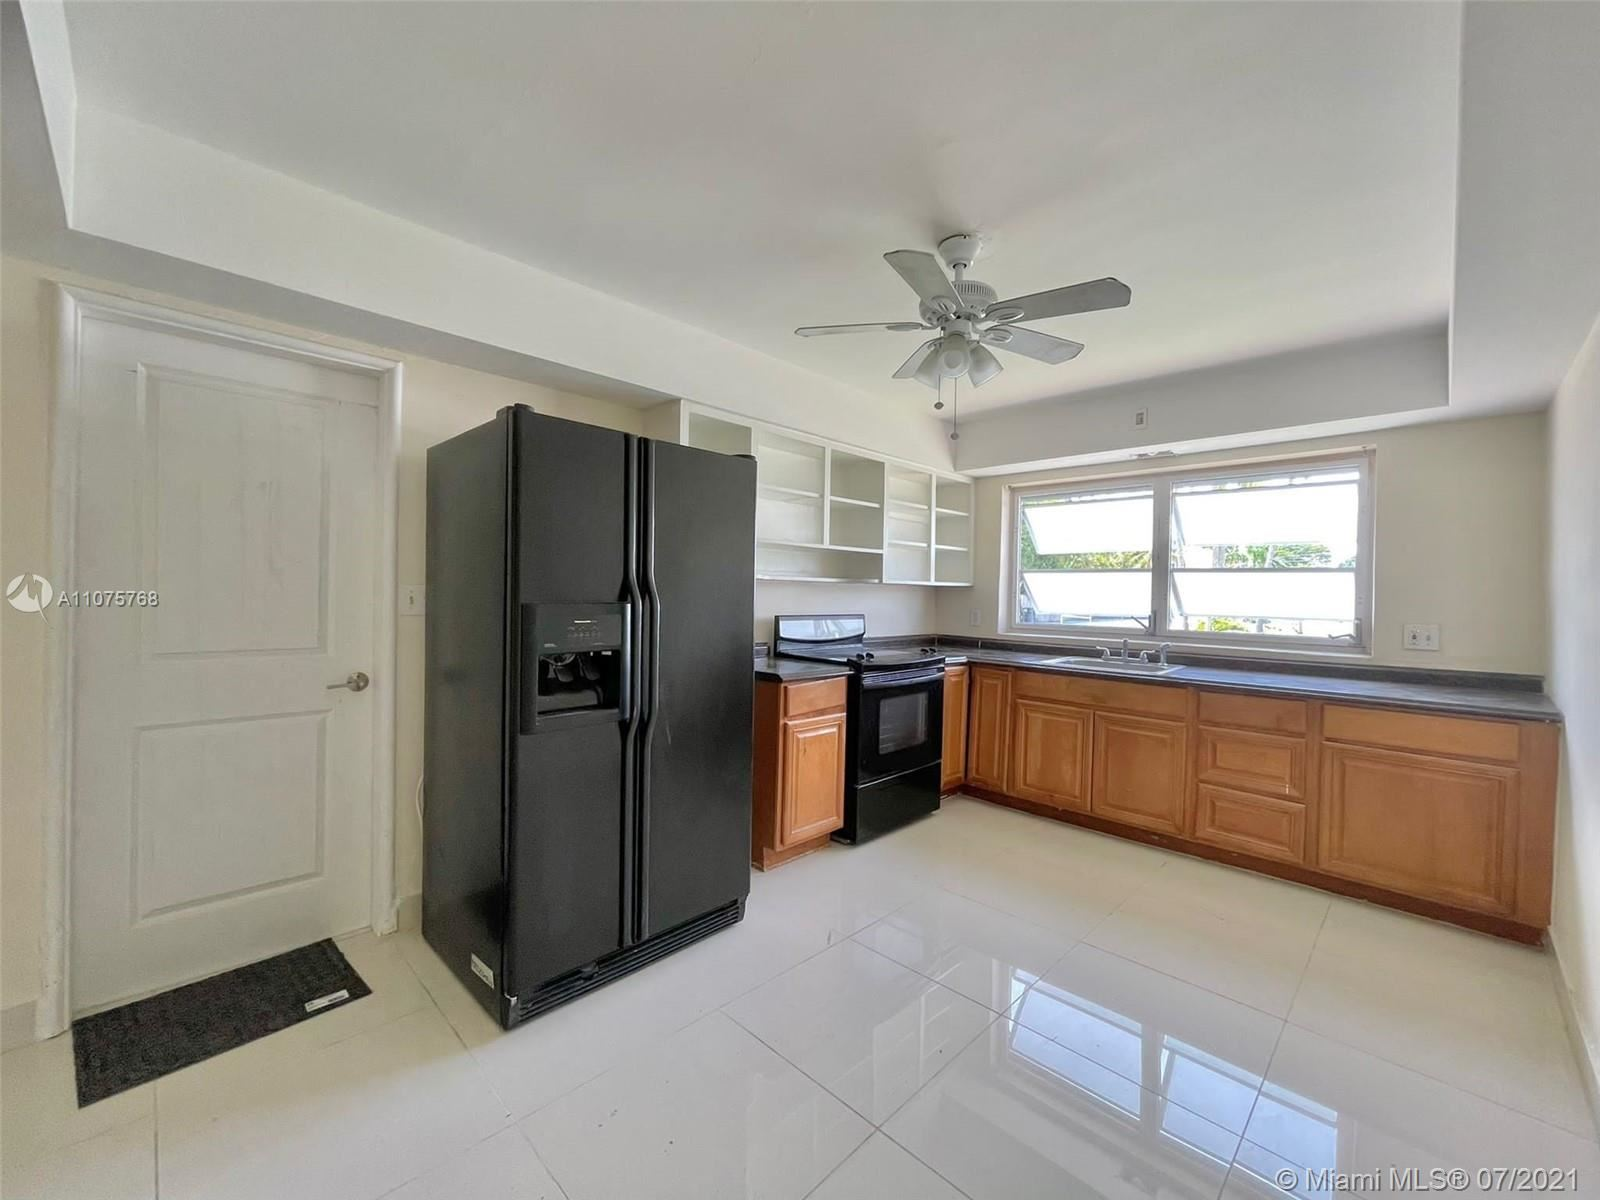 Photo of 1001 SW 4th Ave #1, Fort Lauderdale, FL 33315 (MLS # A11075768)